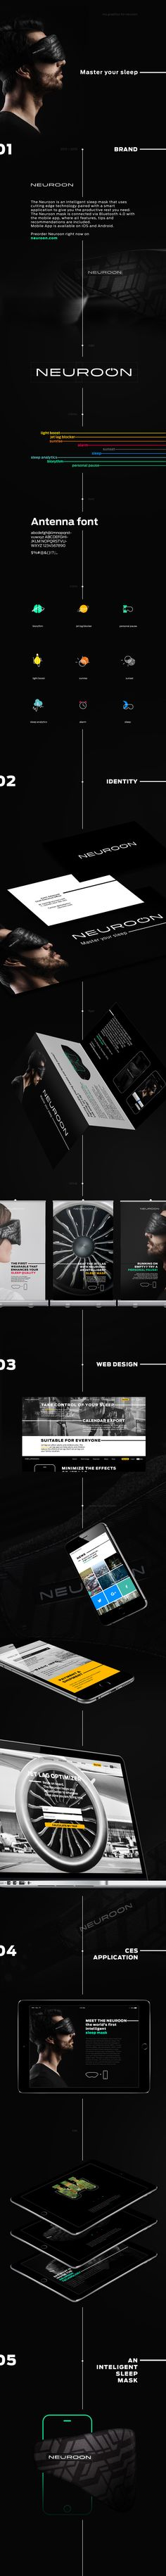 Neuroon on Behance